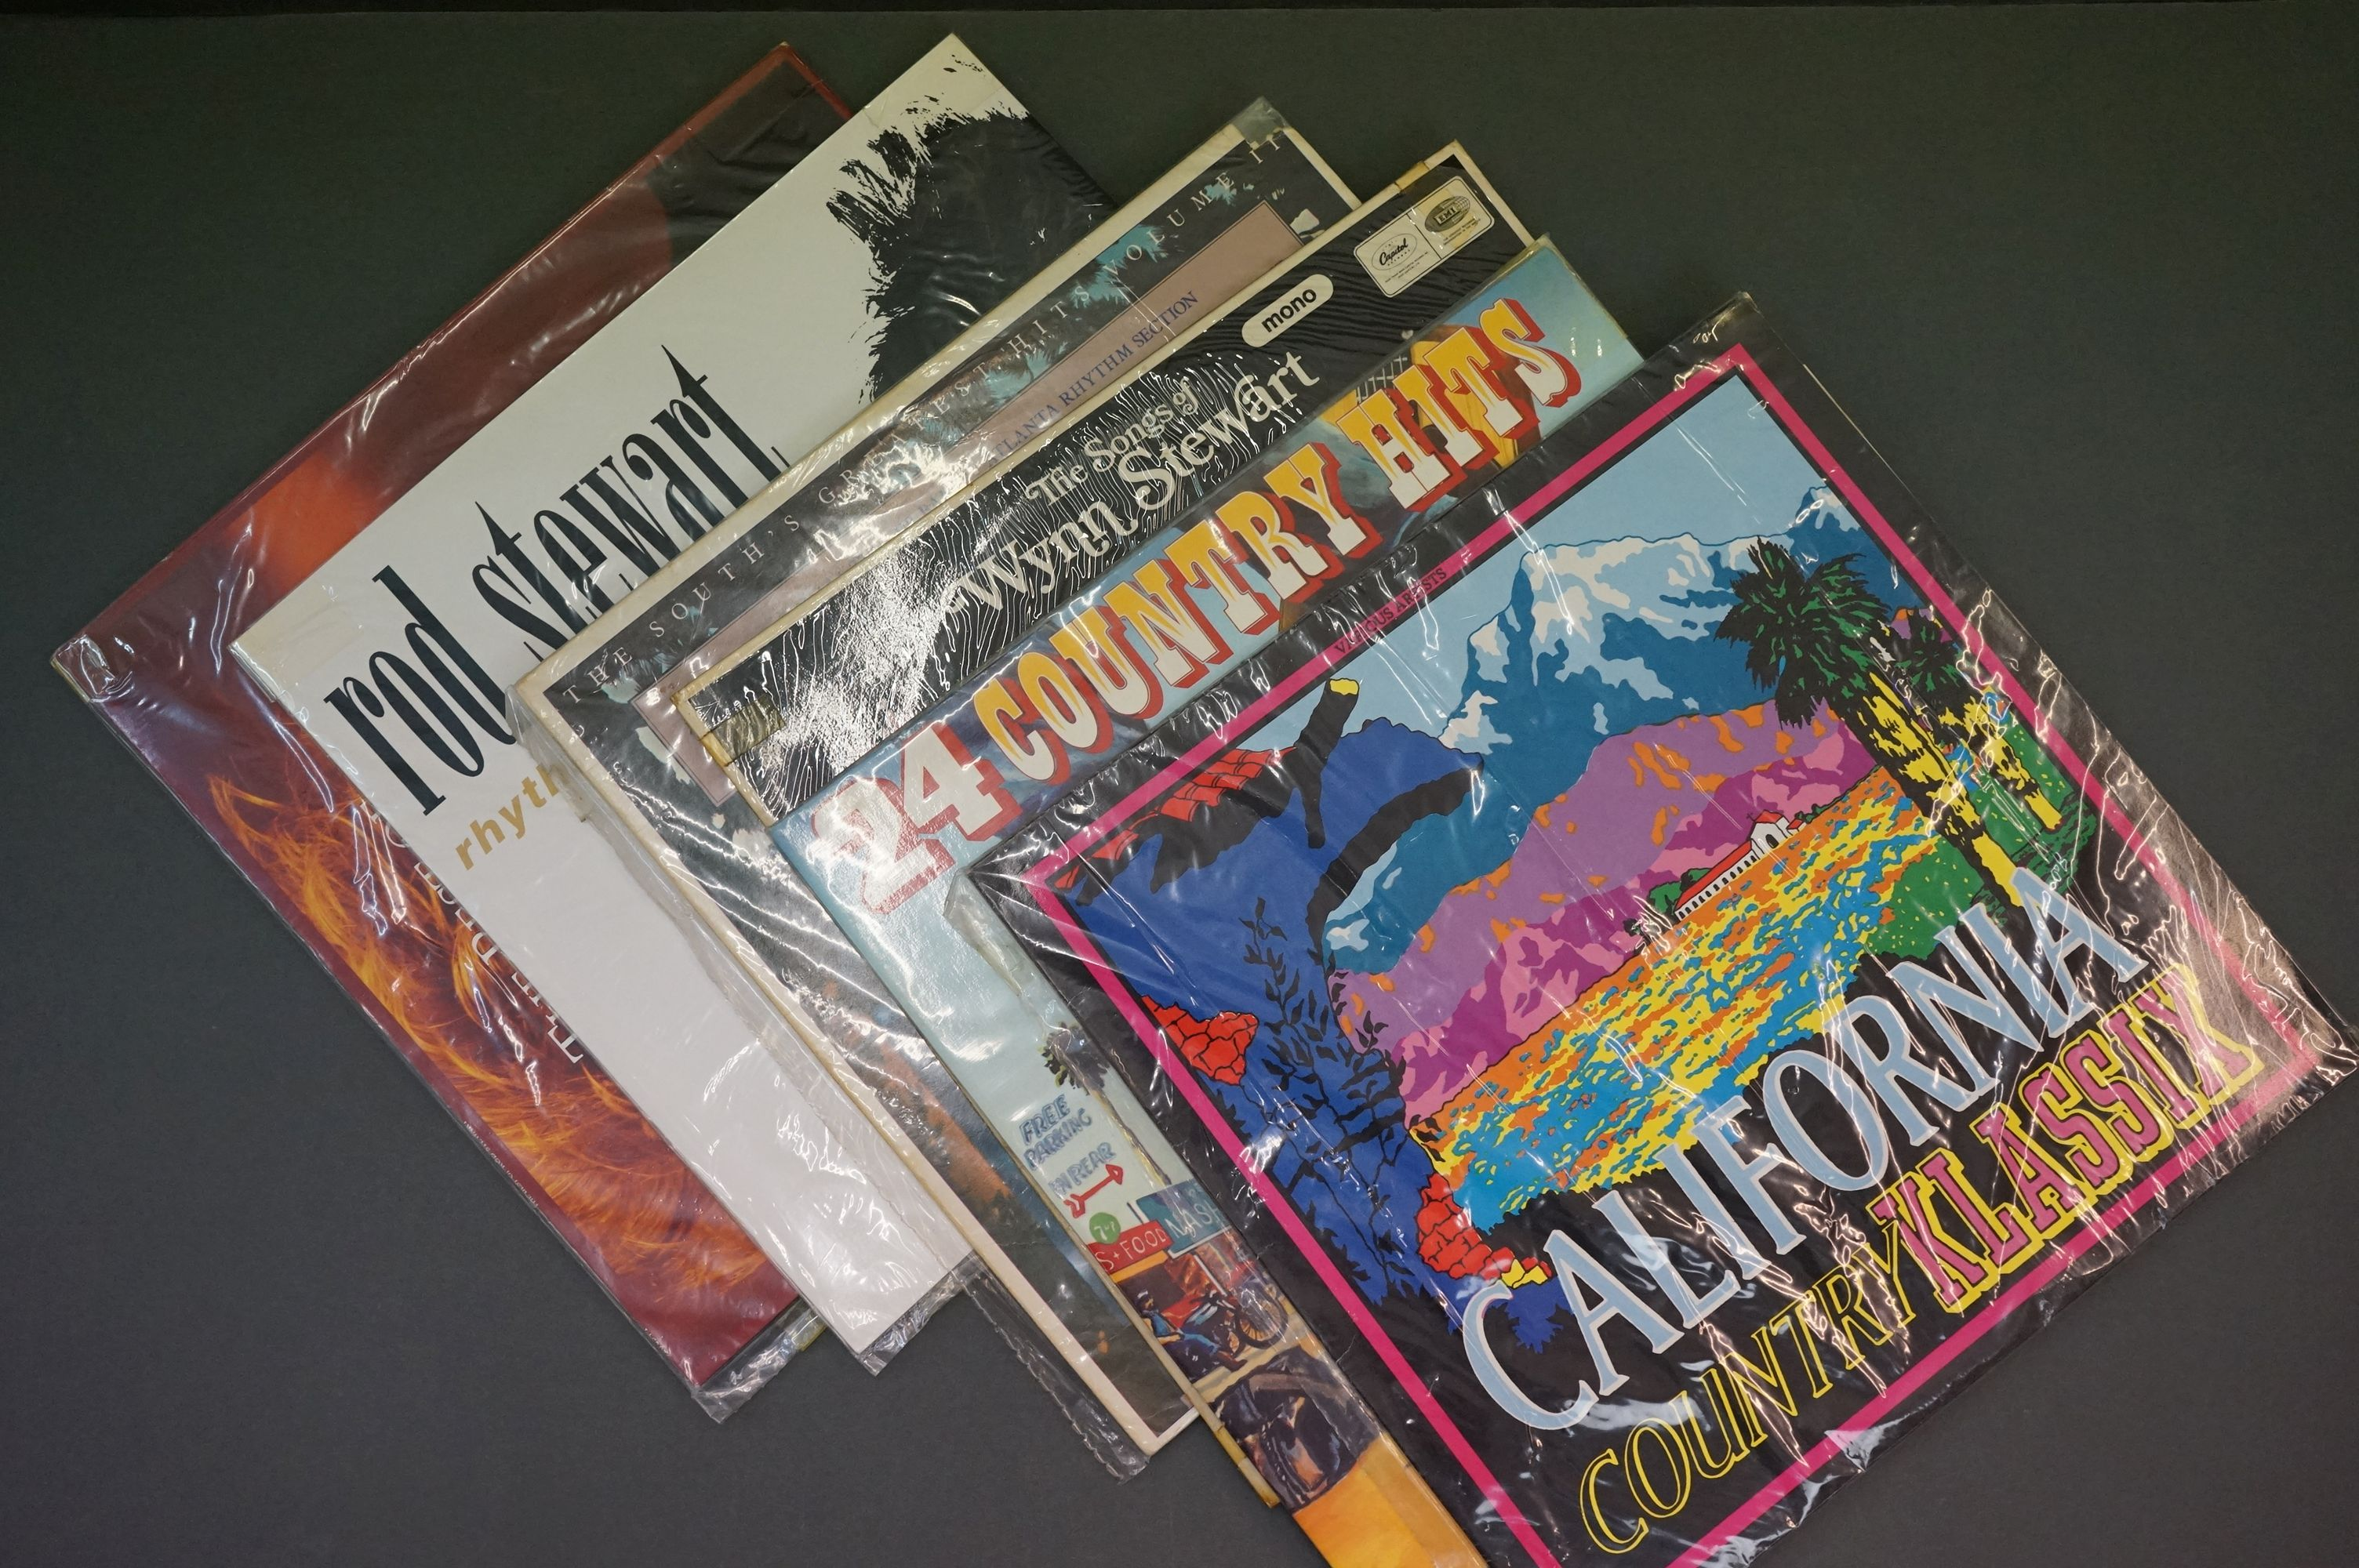 Vinyl - Over 200 LPs featuring Country and other genres, sleeves and vinyl vg+ (two boxes) - Image 2 of 2